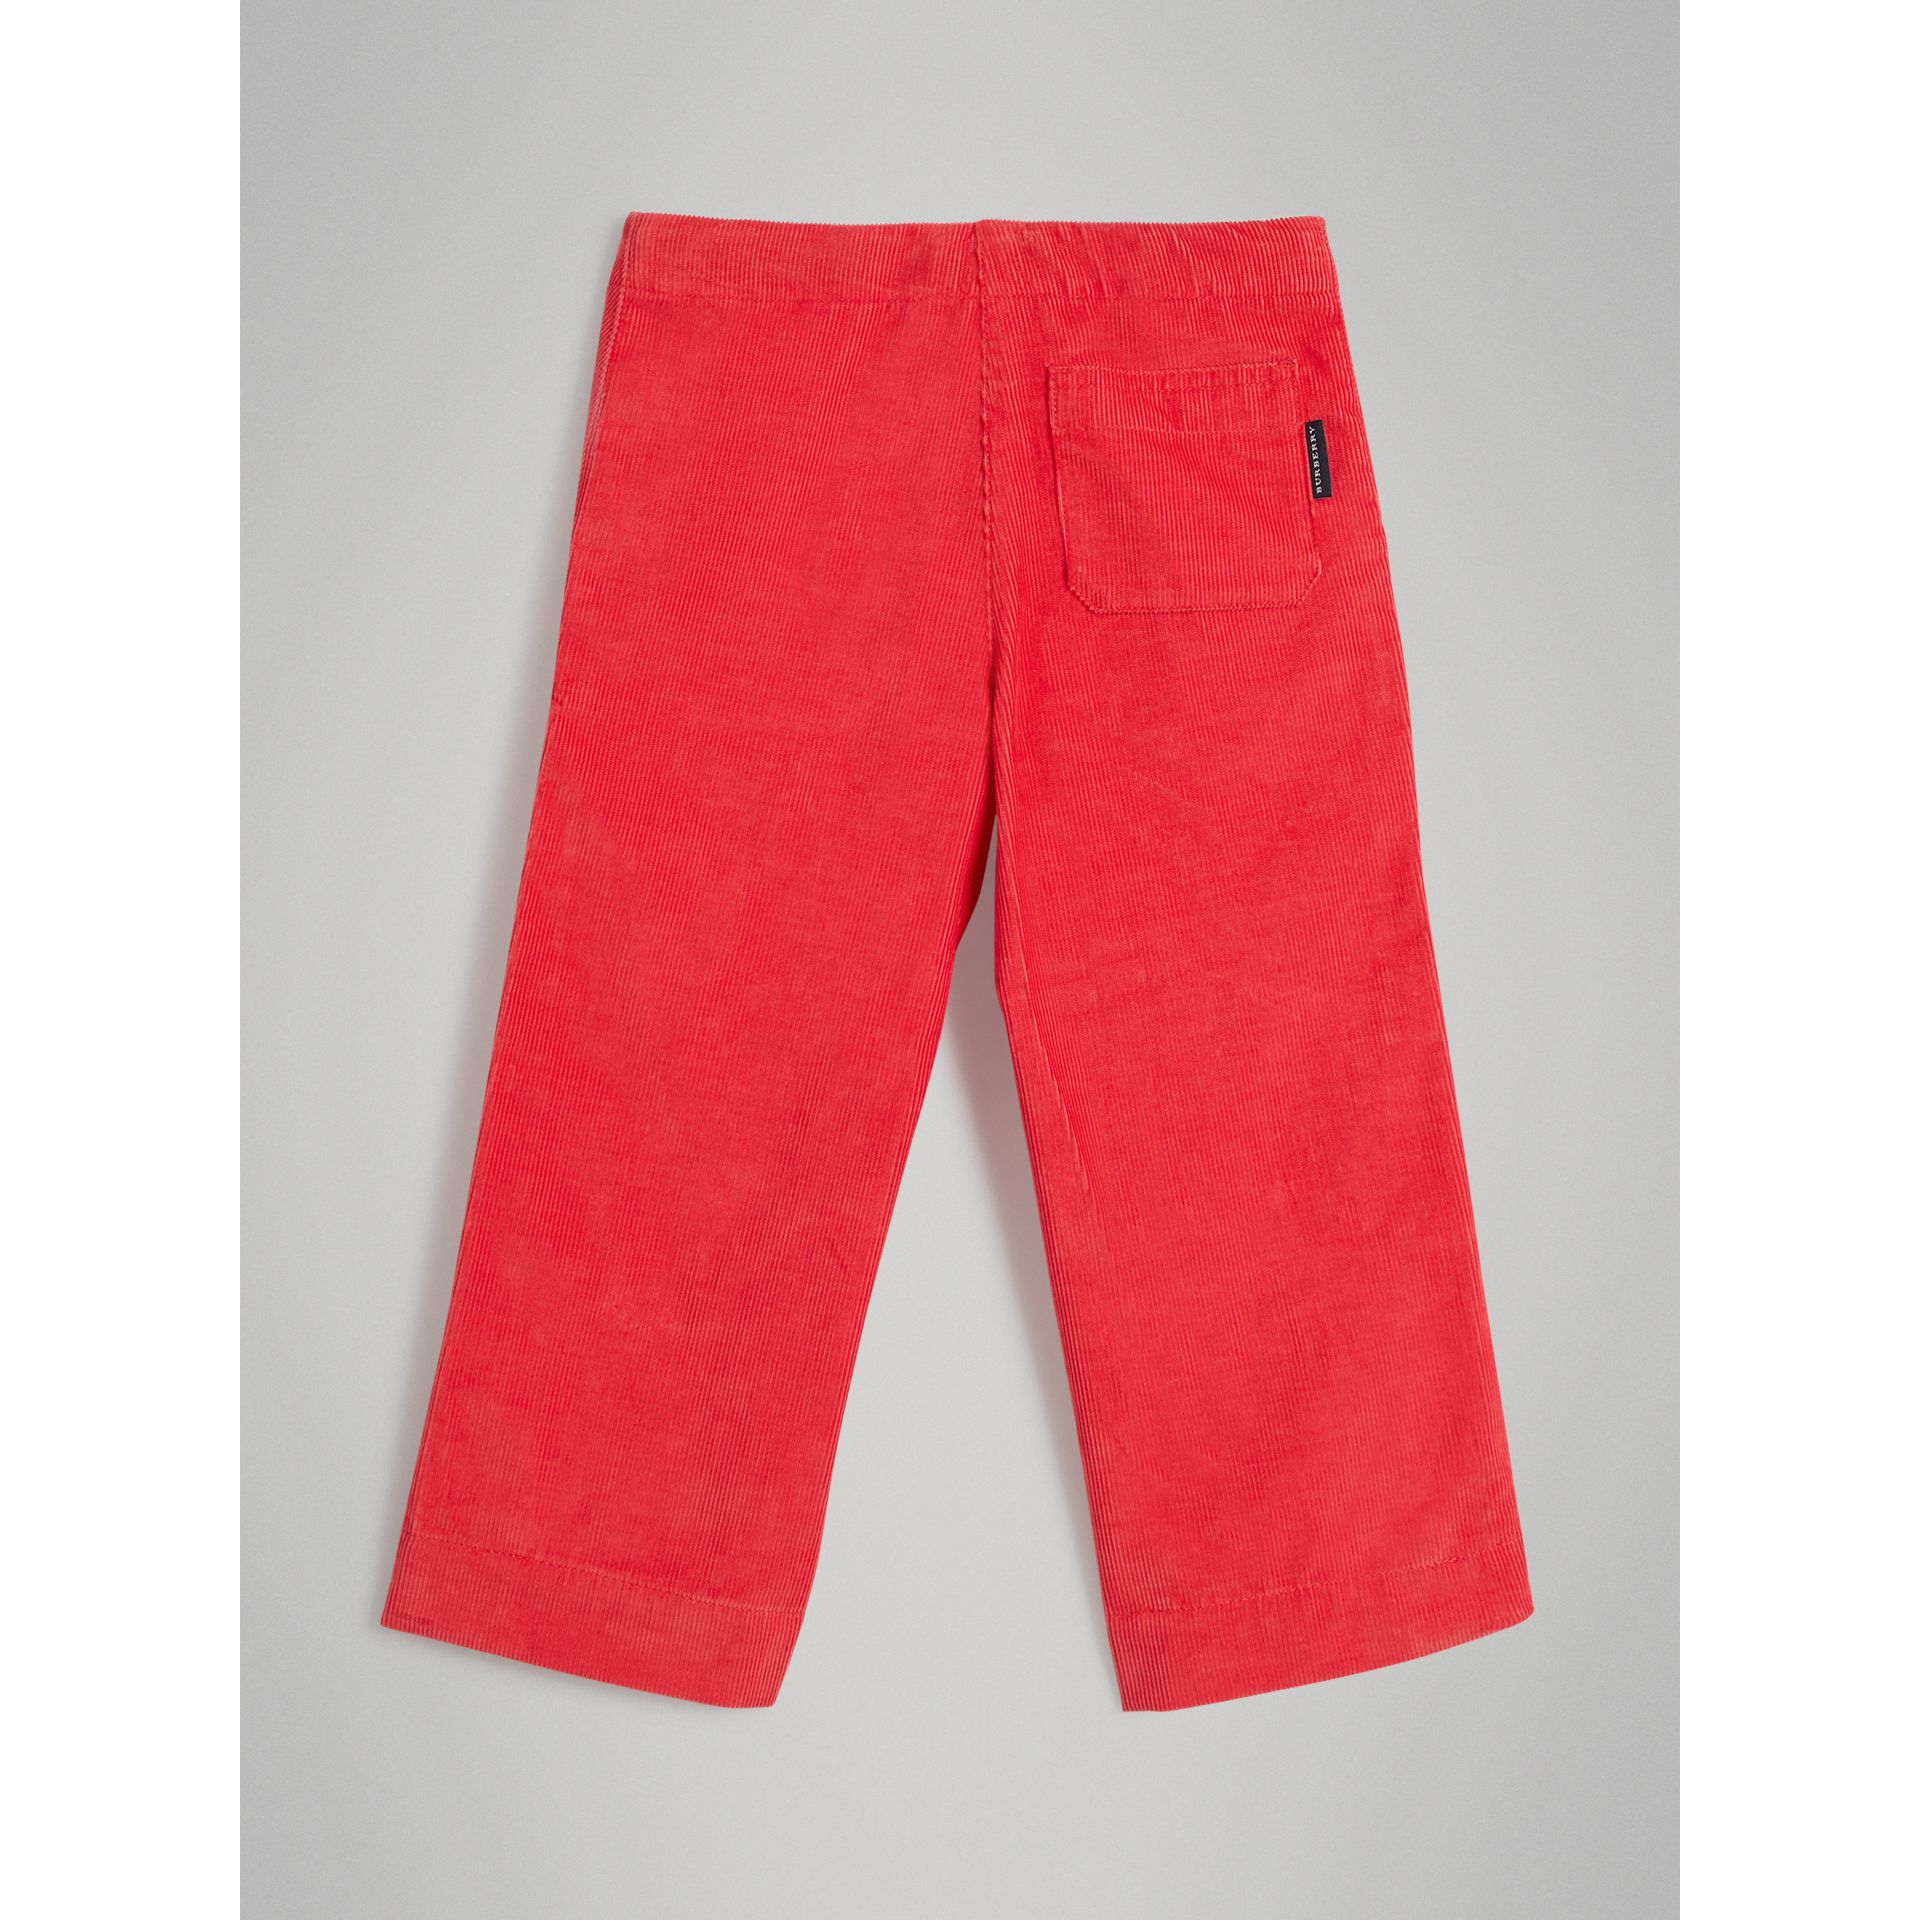 Pantalon ample en velours côtelé (Rouge Orangé Vif) - Fille | Burberry - photo de la galerie 3